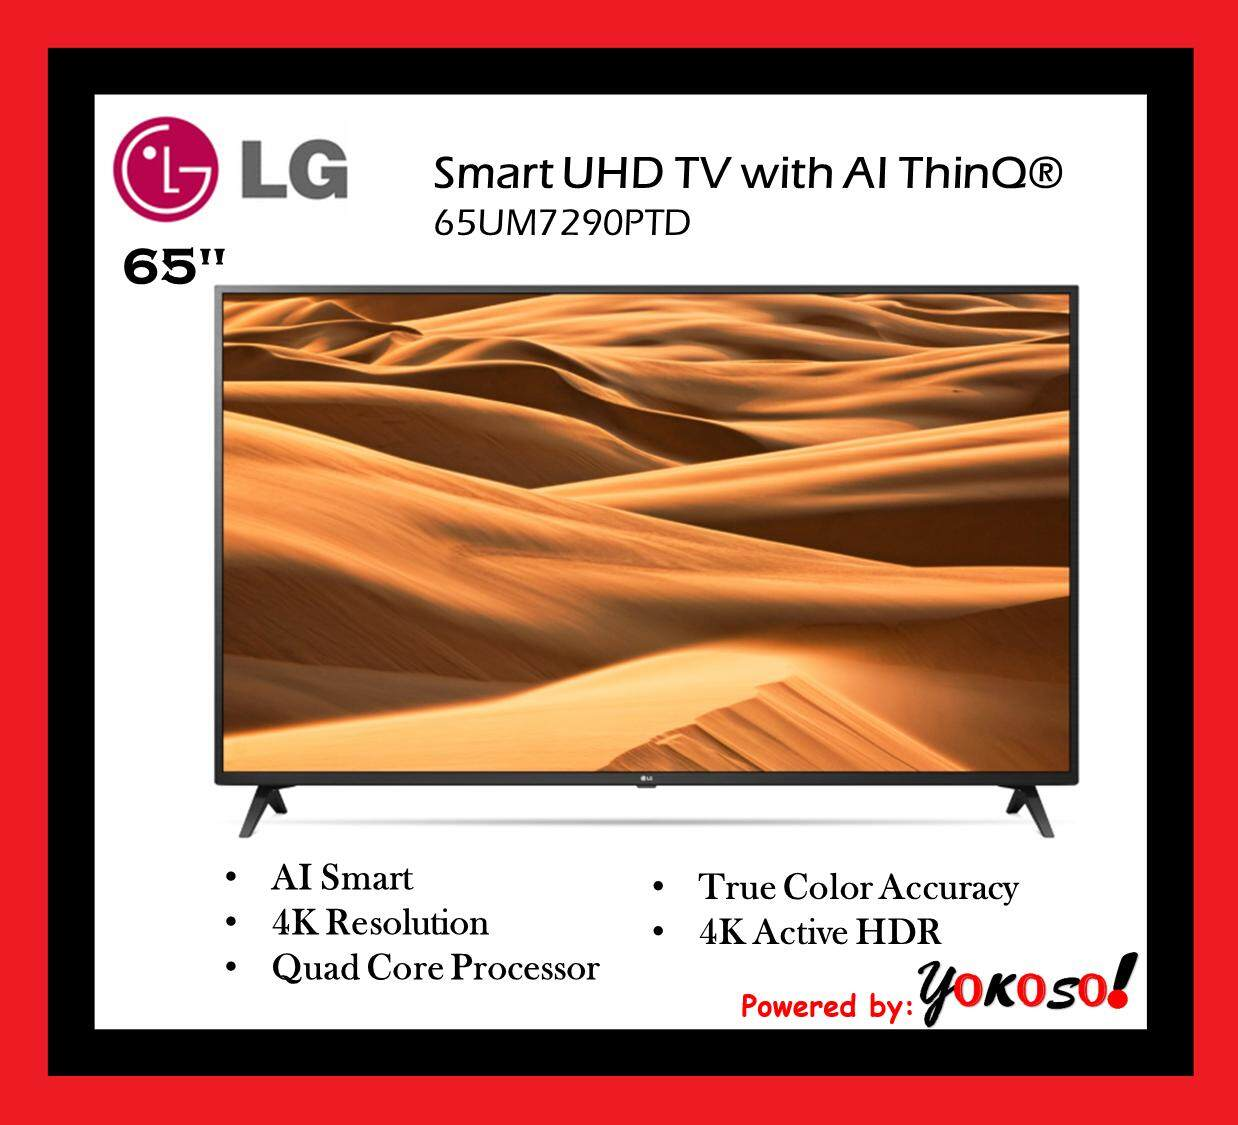 "LG 65UM7290PTD 65"" HDR Smart UHD TV with AI ThinQ®"